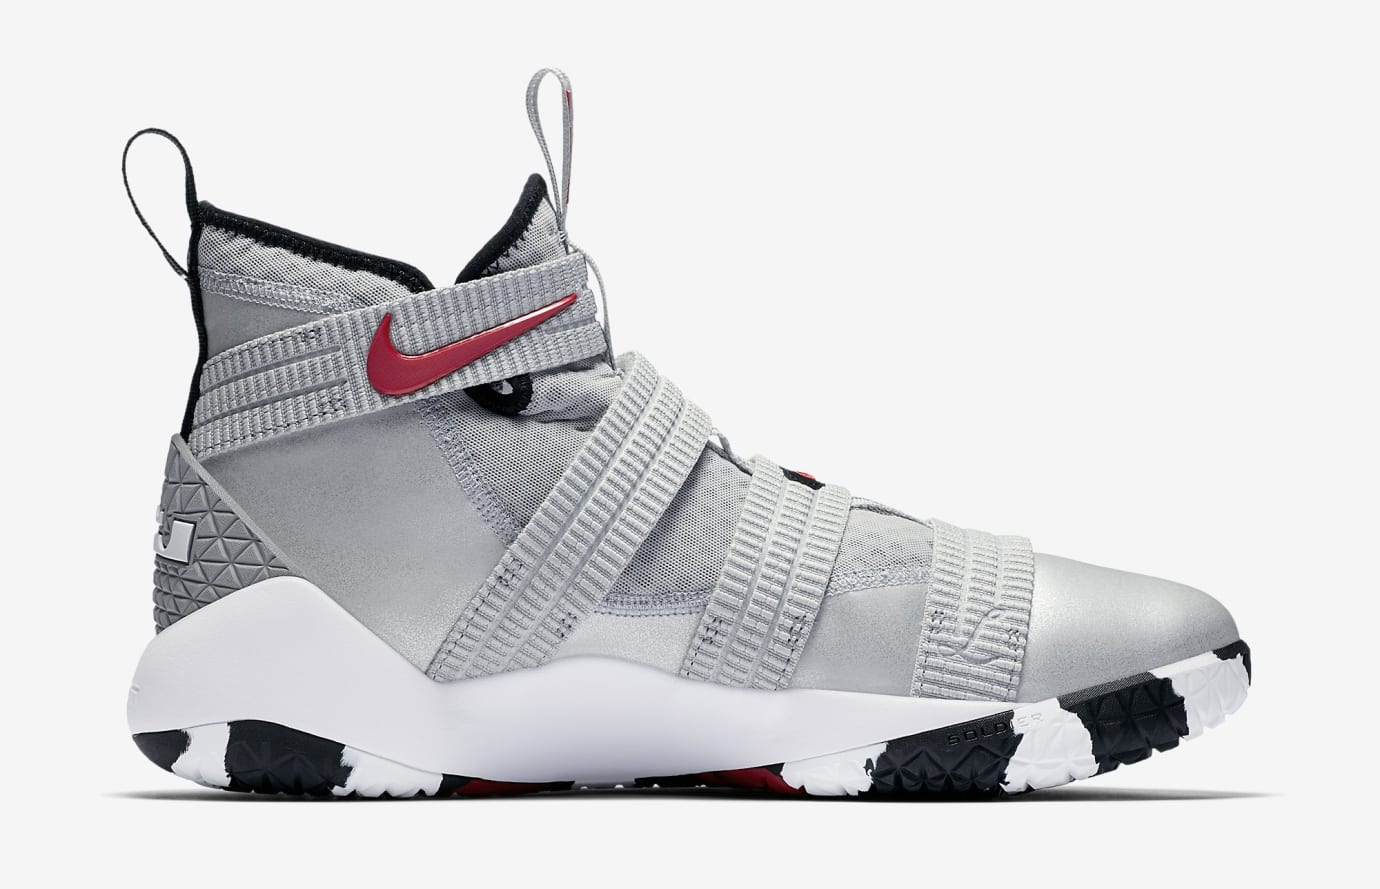 49bbcaa31dd Image via Nike Silver Bullet Nike LeBron Soldier 11 897646-007 Medial